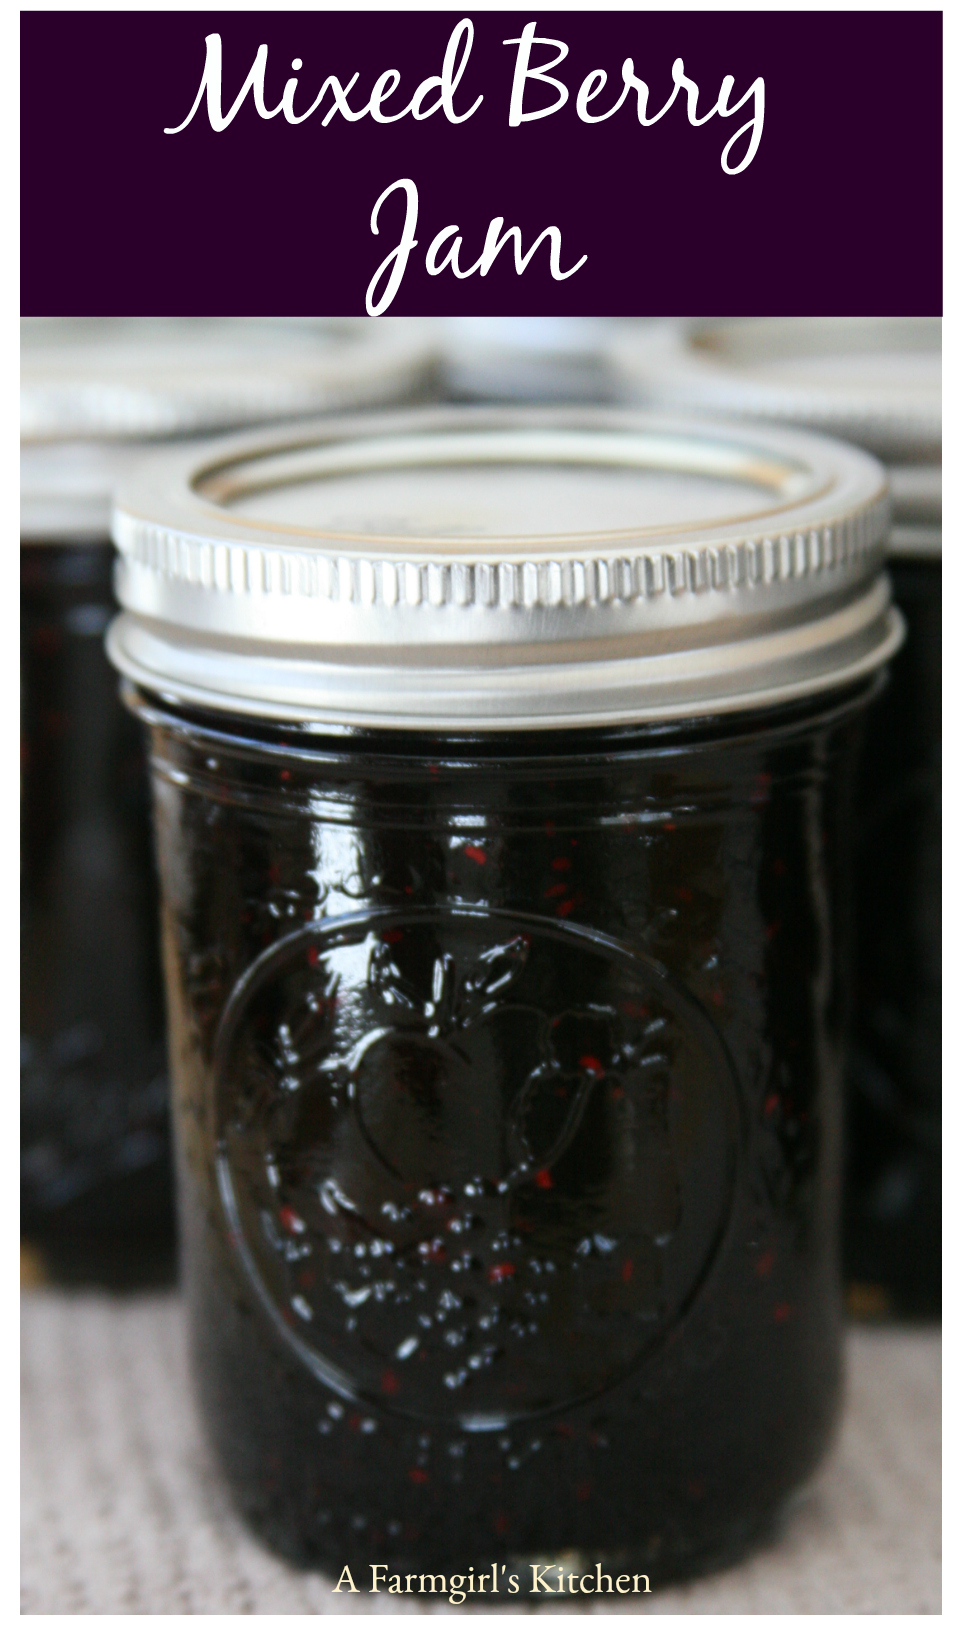 Learn how to can this delicious Mixed Berry Jam. #recipe #foodblogger #homemade